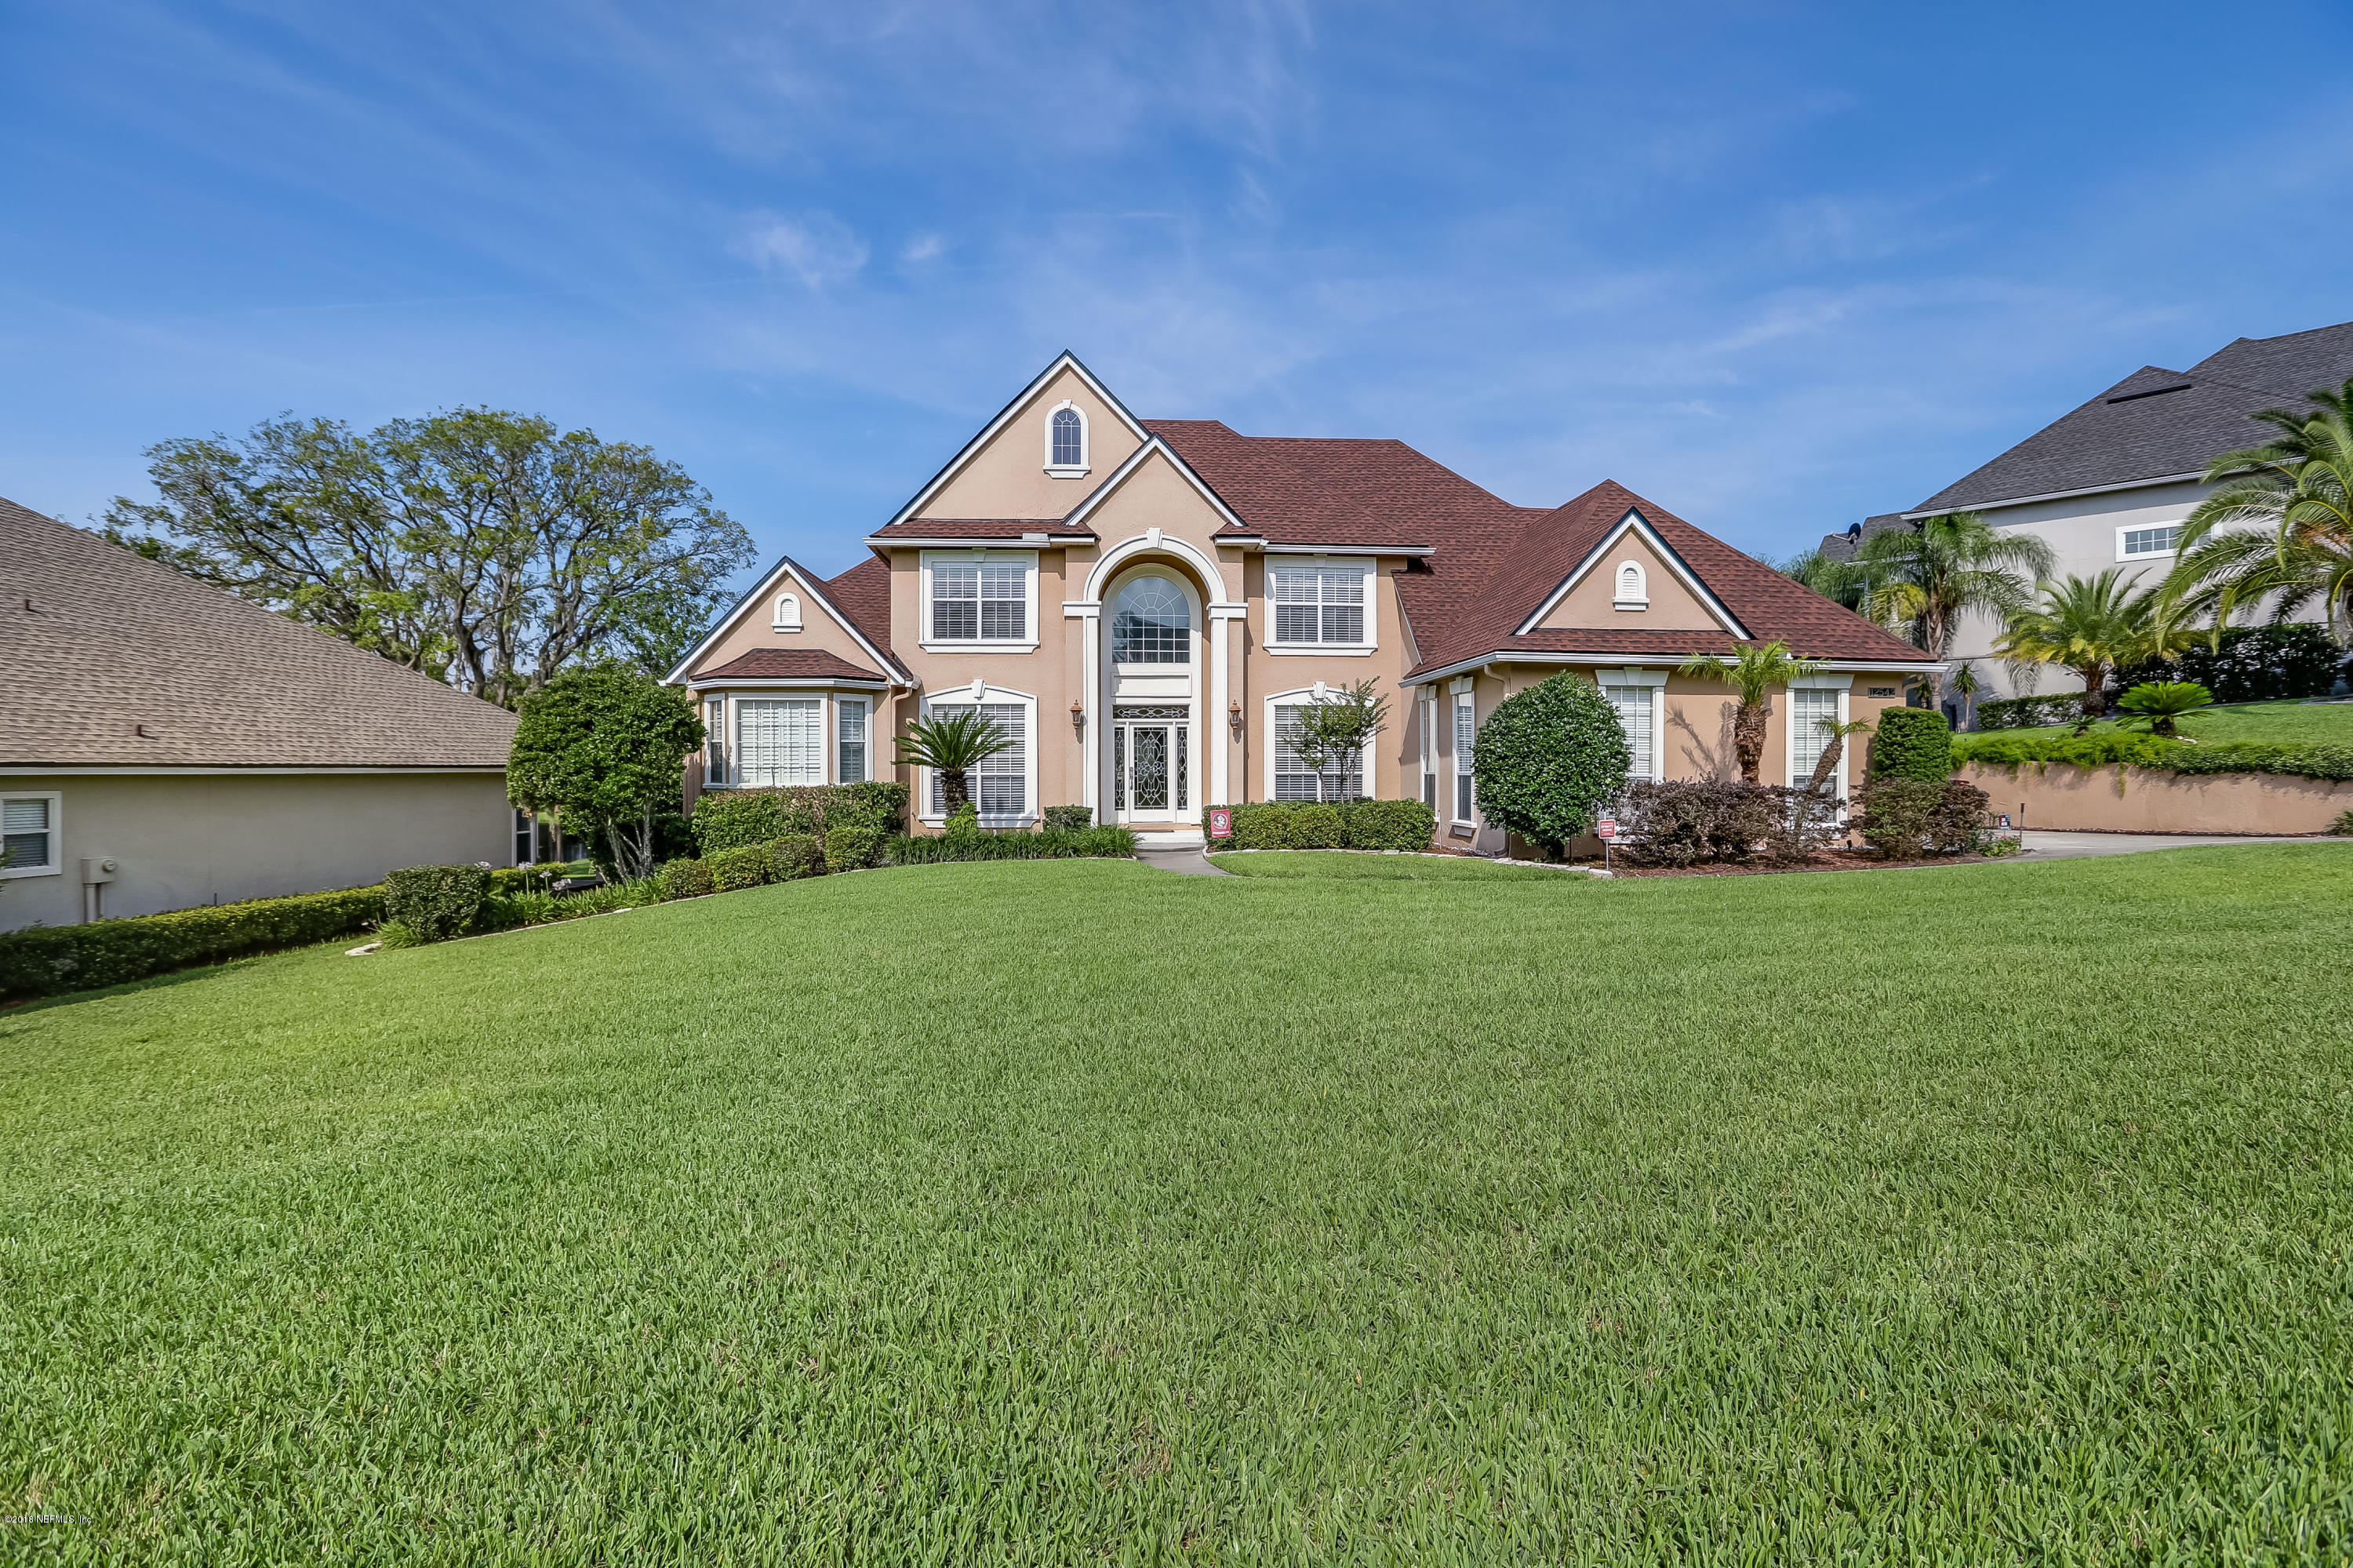 12542 HIGHVIEW, JACKSONVILLE, FLORIDA 32225, 5 Bedrooms Bedrooms, ,3 BathroomsBathrooms,Residential - single family,For sale,HIGHVIEW,939245